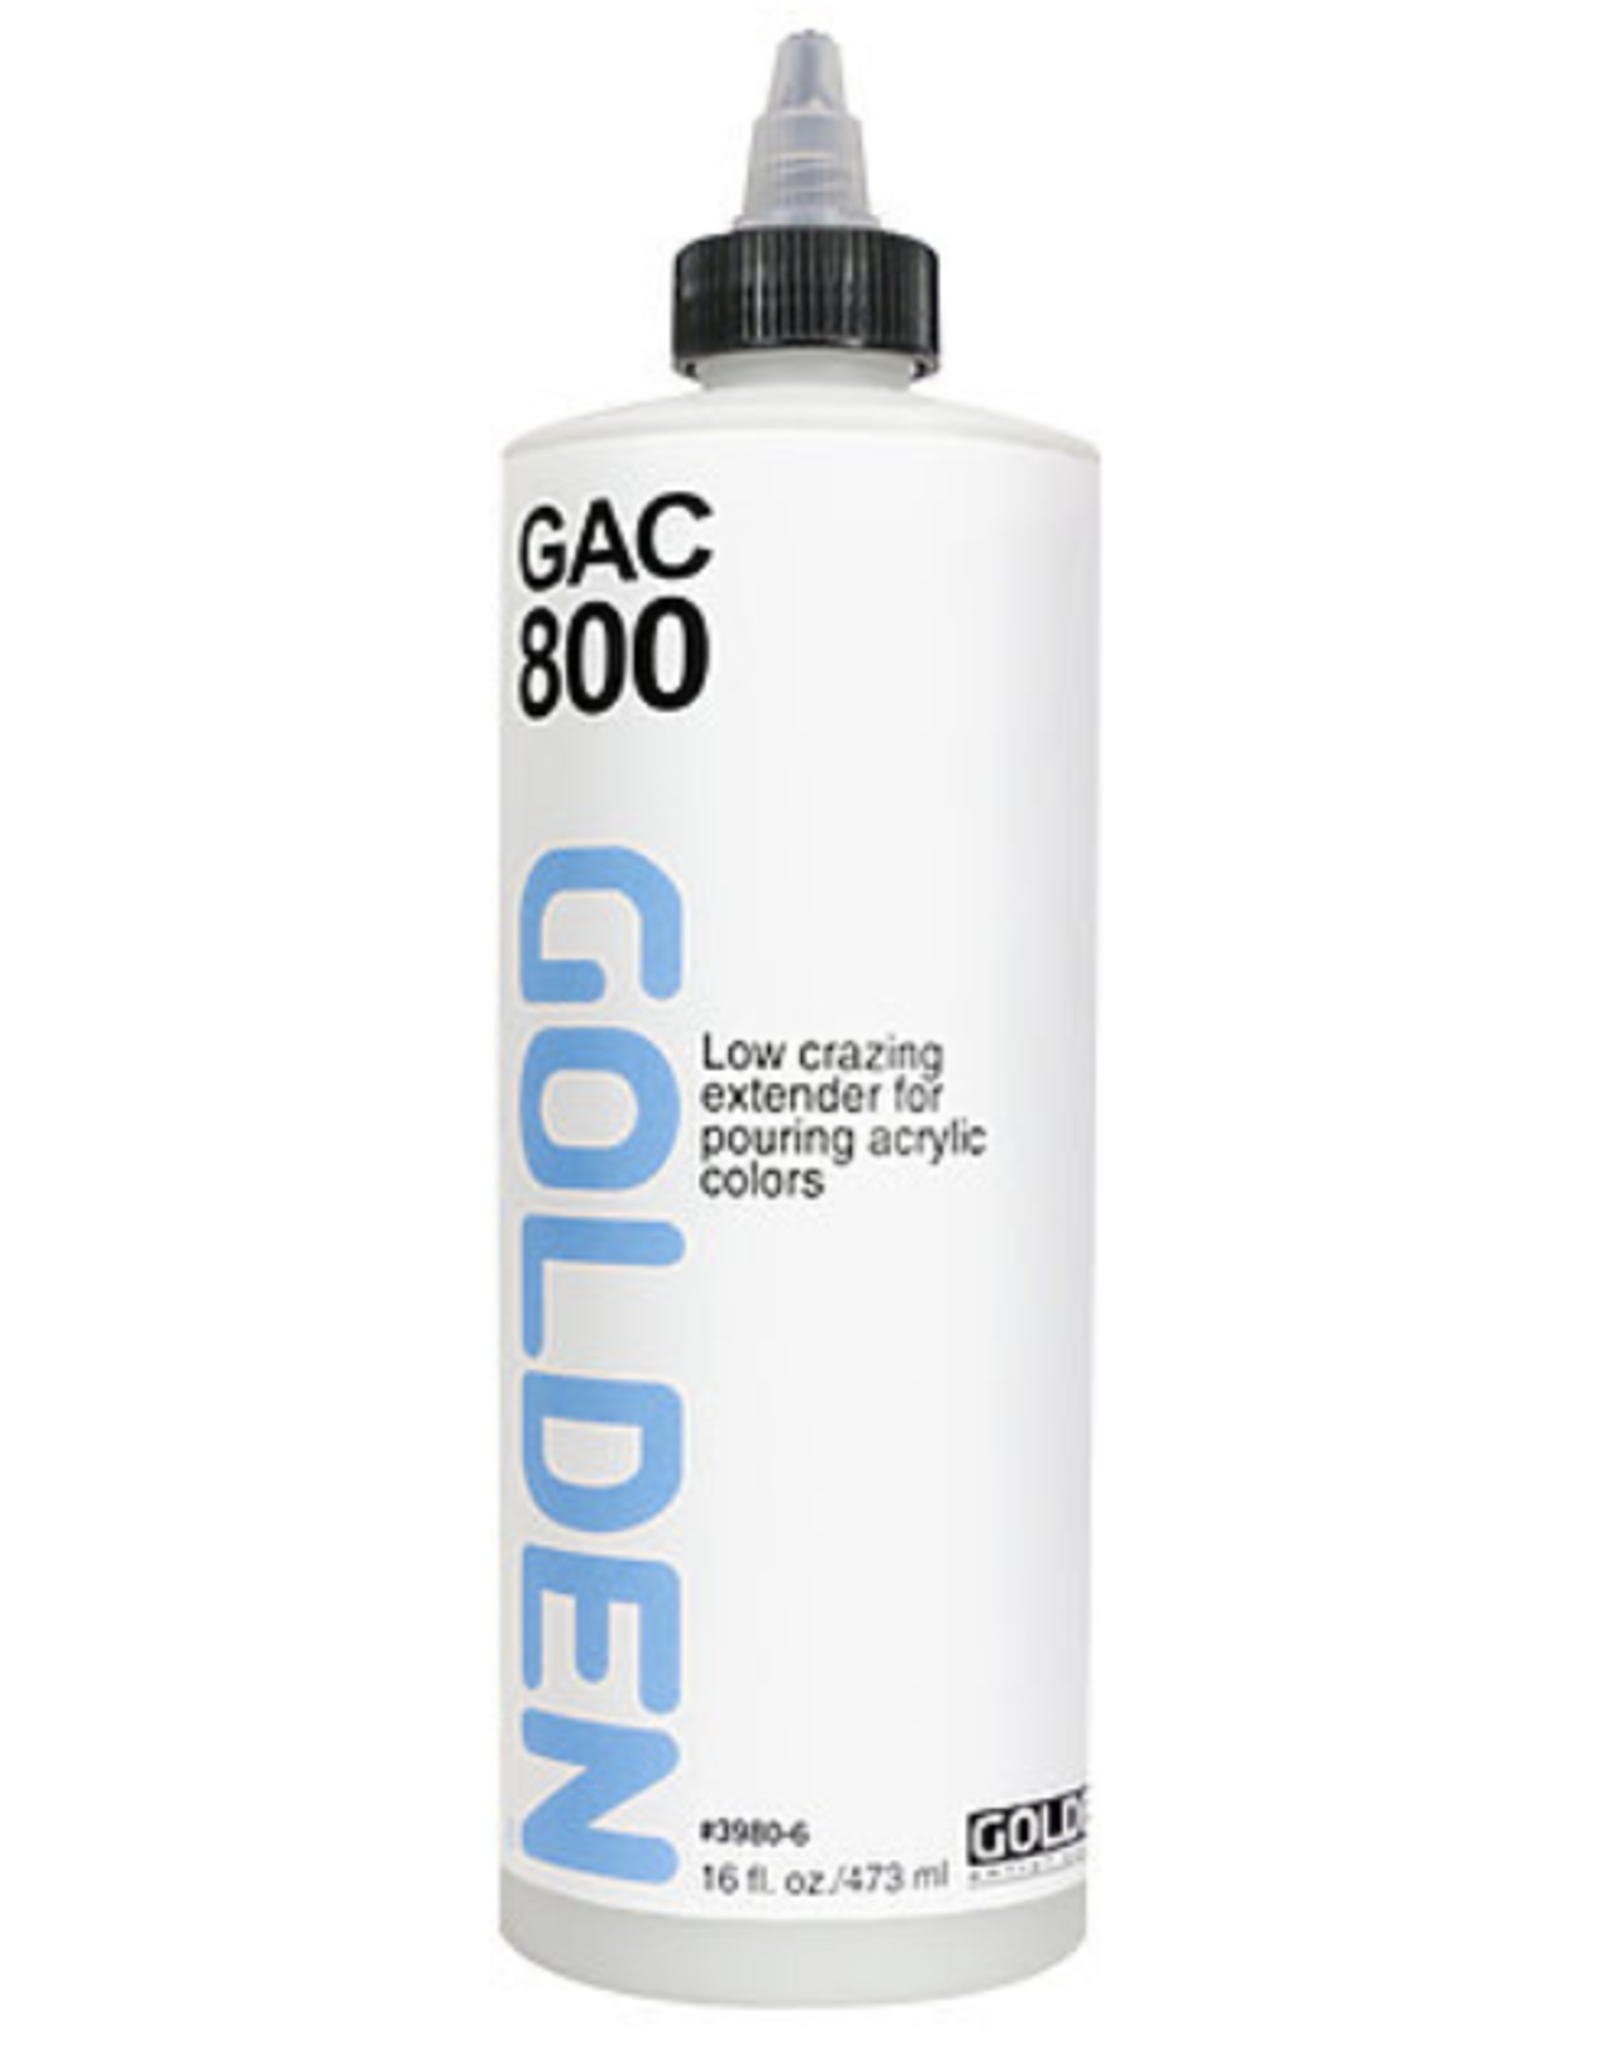 GAC 800, Golden Acrylic Extender for Pouring, 8oz